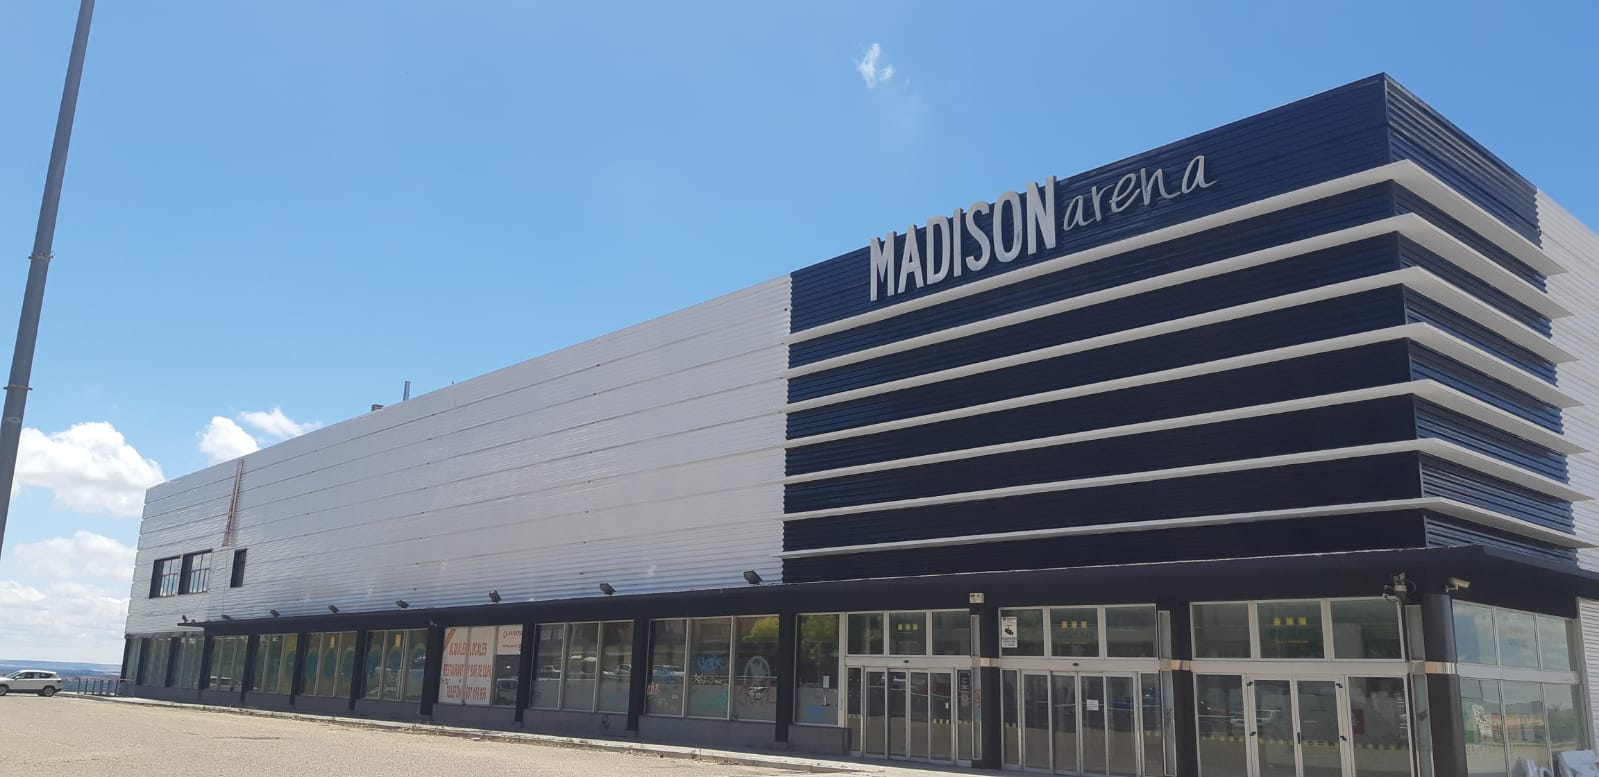 Madison Arena, nueva sede de Madison.